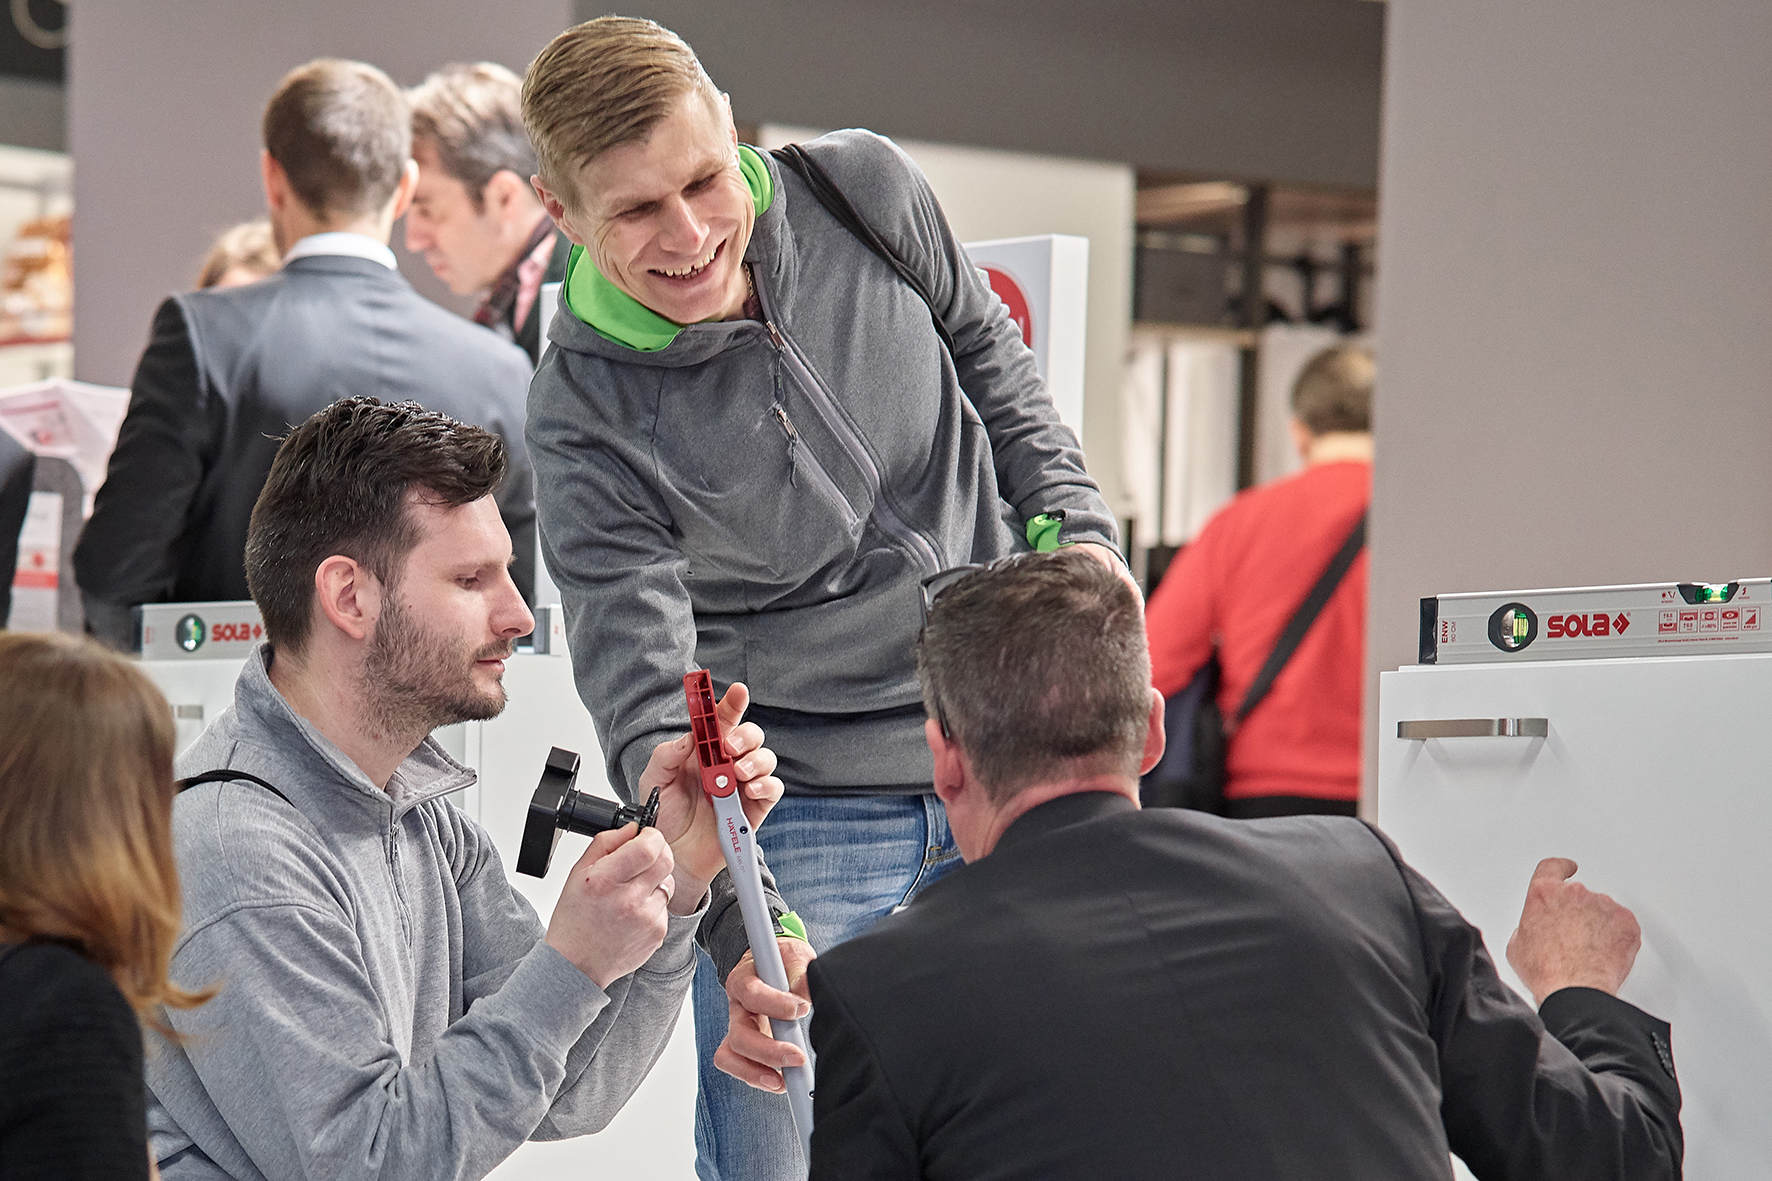 Intense activity at the live presentations in the Axilo arena at the Häfele trade fair booth at the Holz-Handwerk. The new plinth adjusting fitting system with an installation time saving of up to 50% has passed the endurance test.